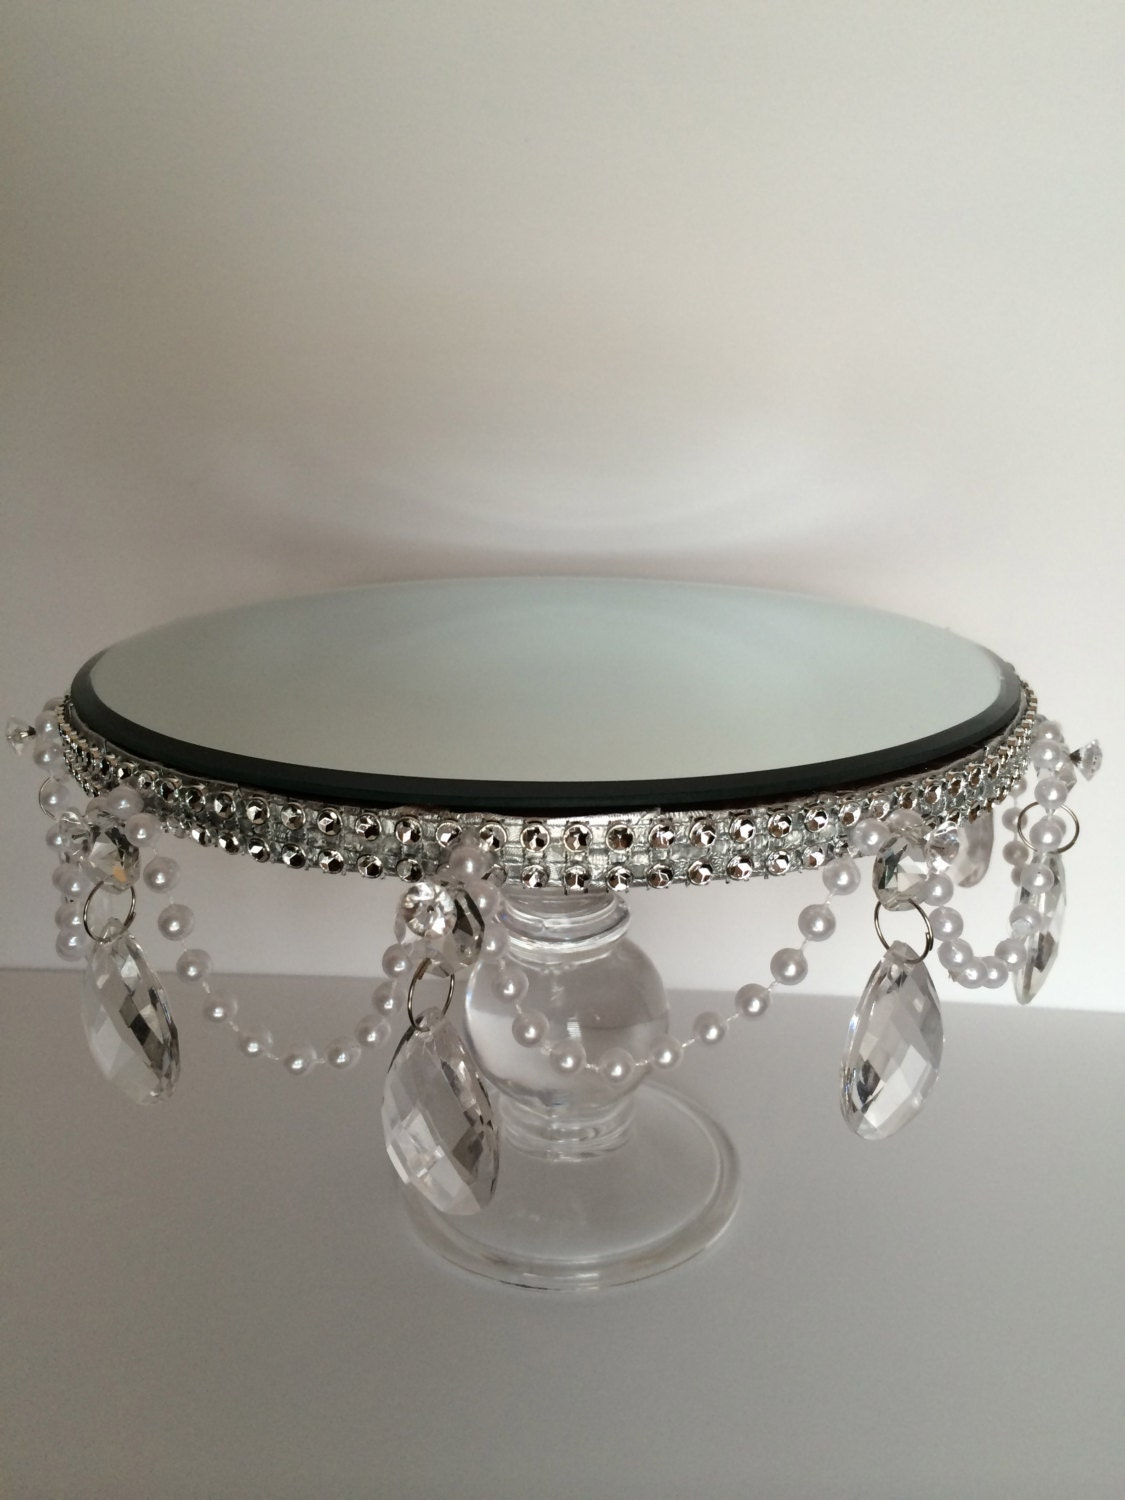 Cake Stand with Pearl and Acrylic Tear Drop Crystals